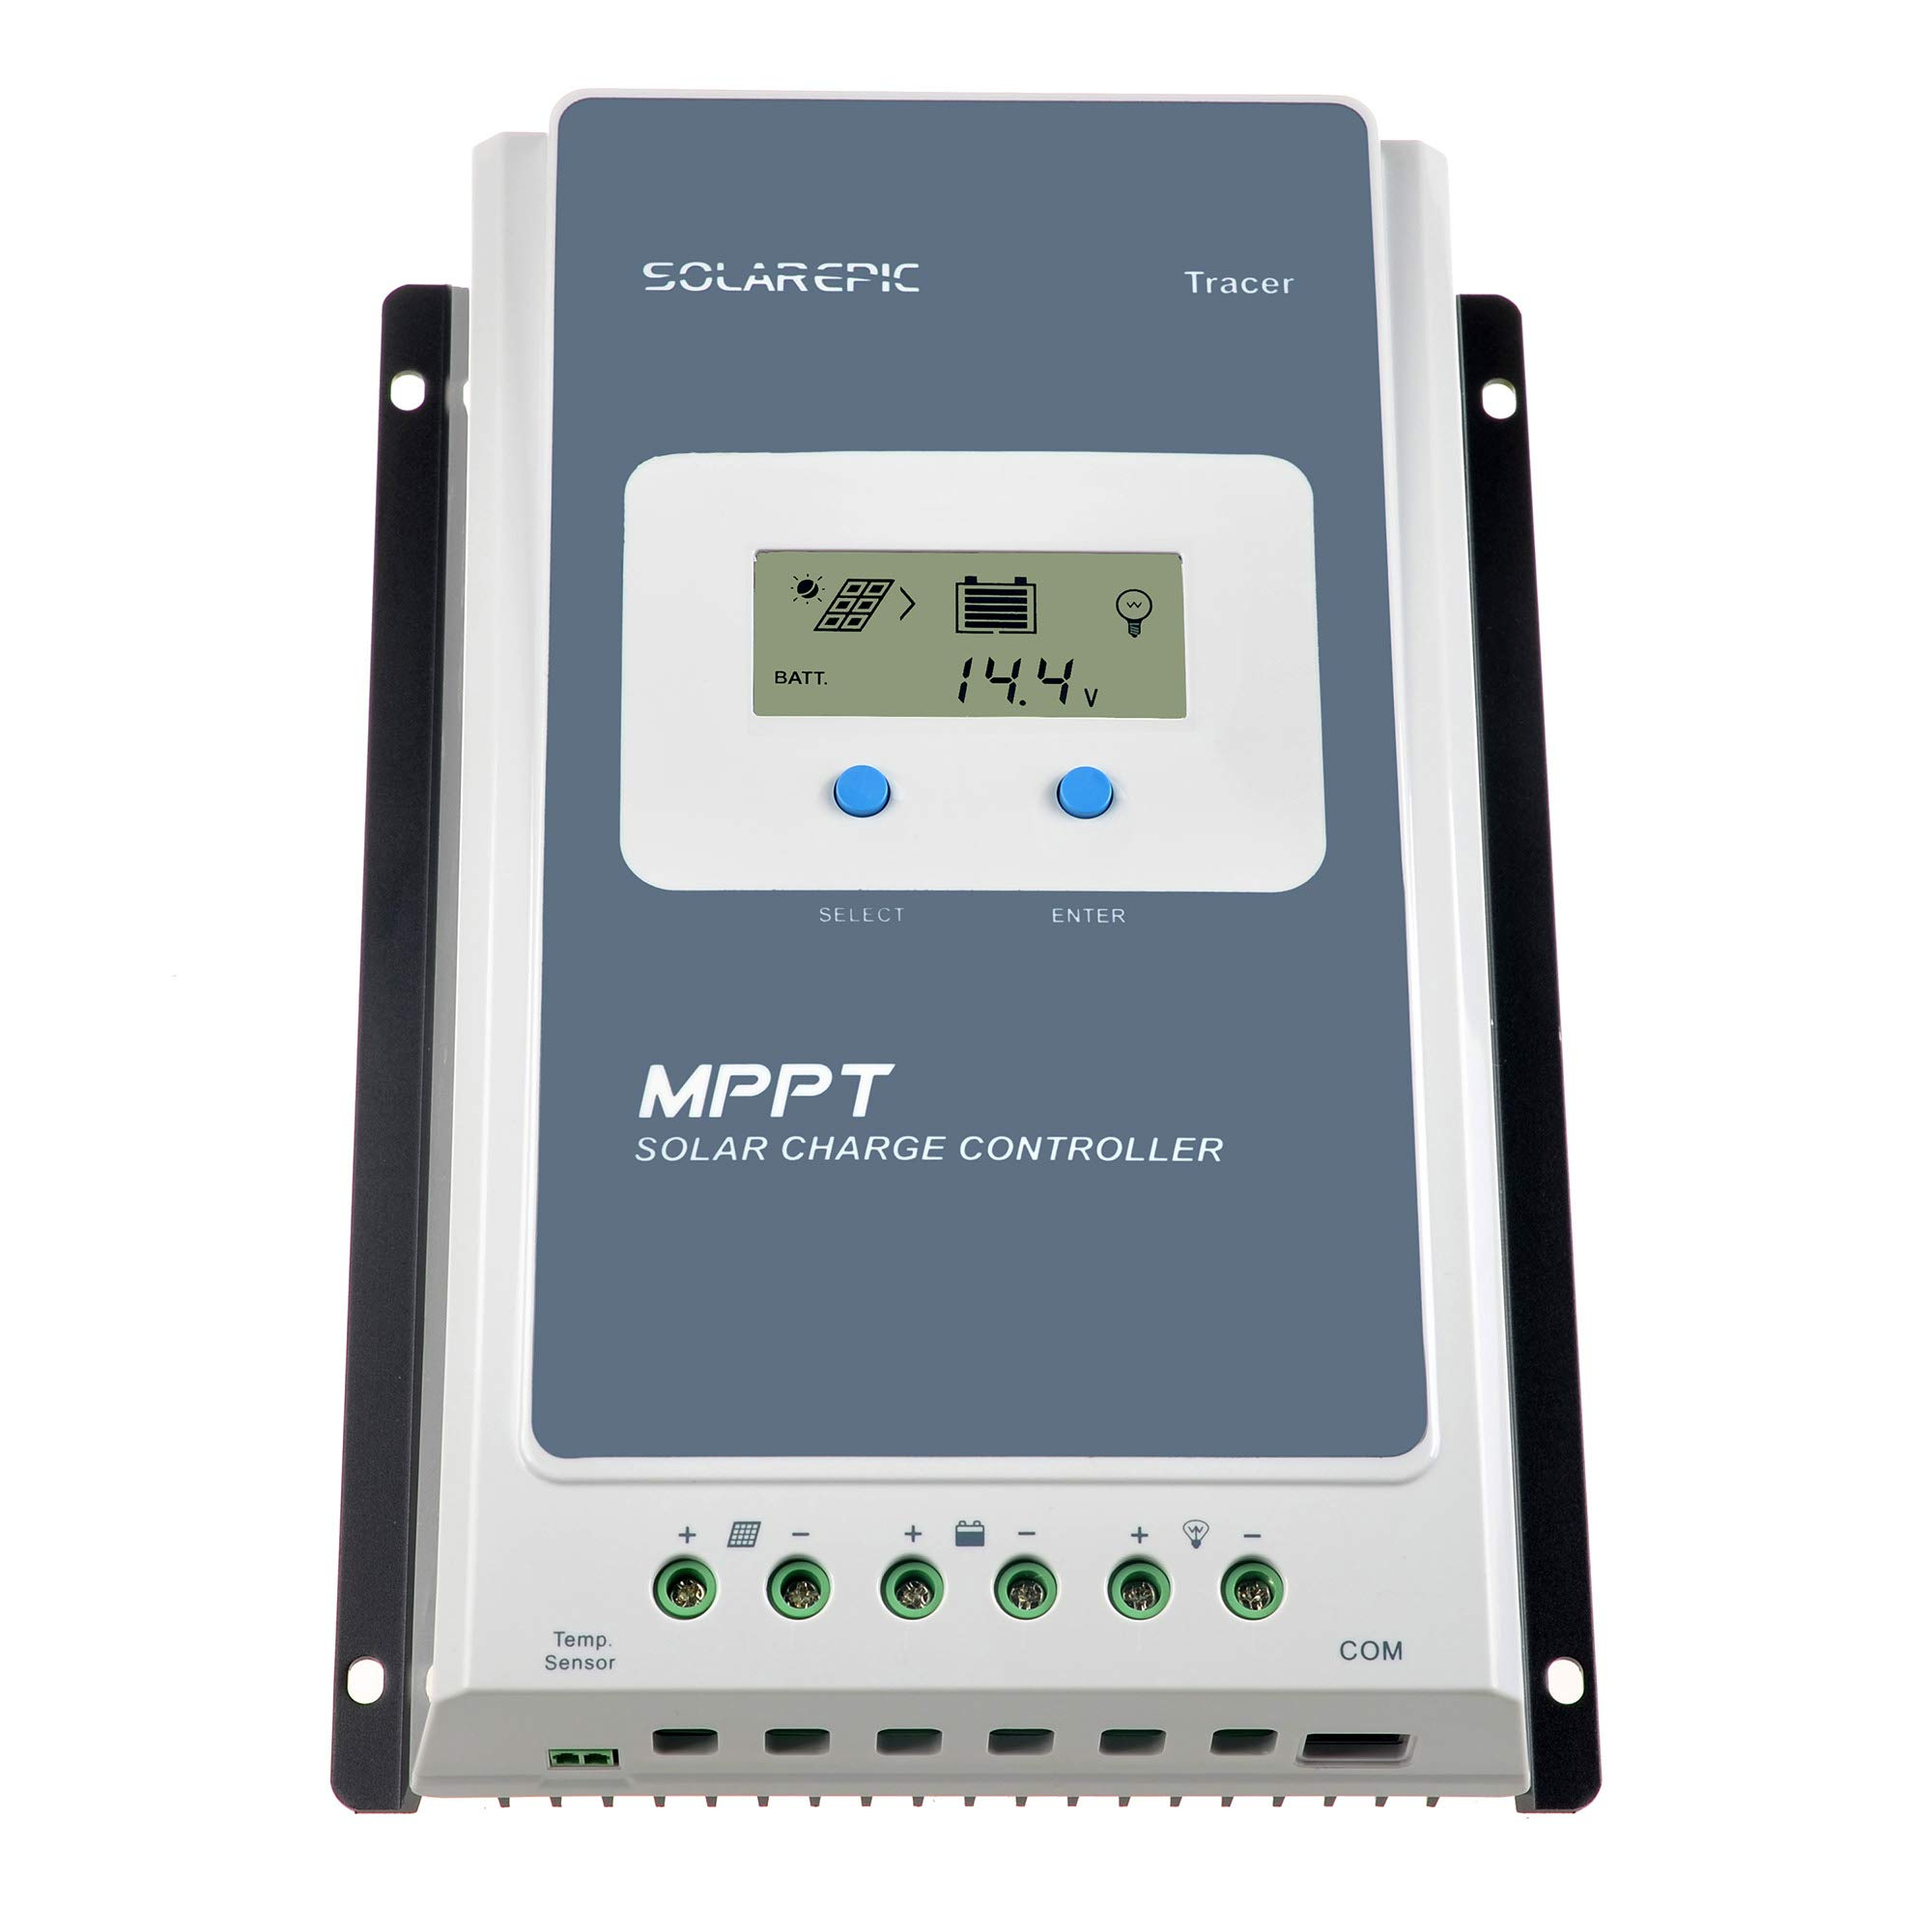 EPEVER 40A MPPT Solar Charge Controller 100V Input Tracer 4210AN with Display Negative Ground Lithium Battery Charger Work with LiFePO4 by SolarEpic